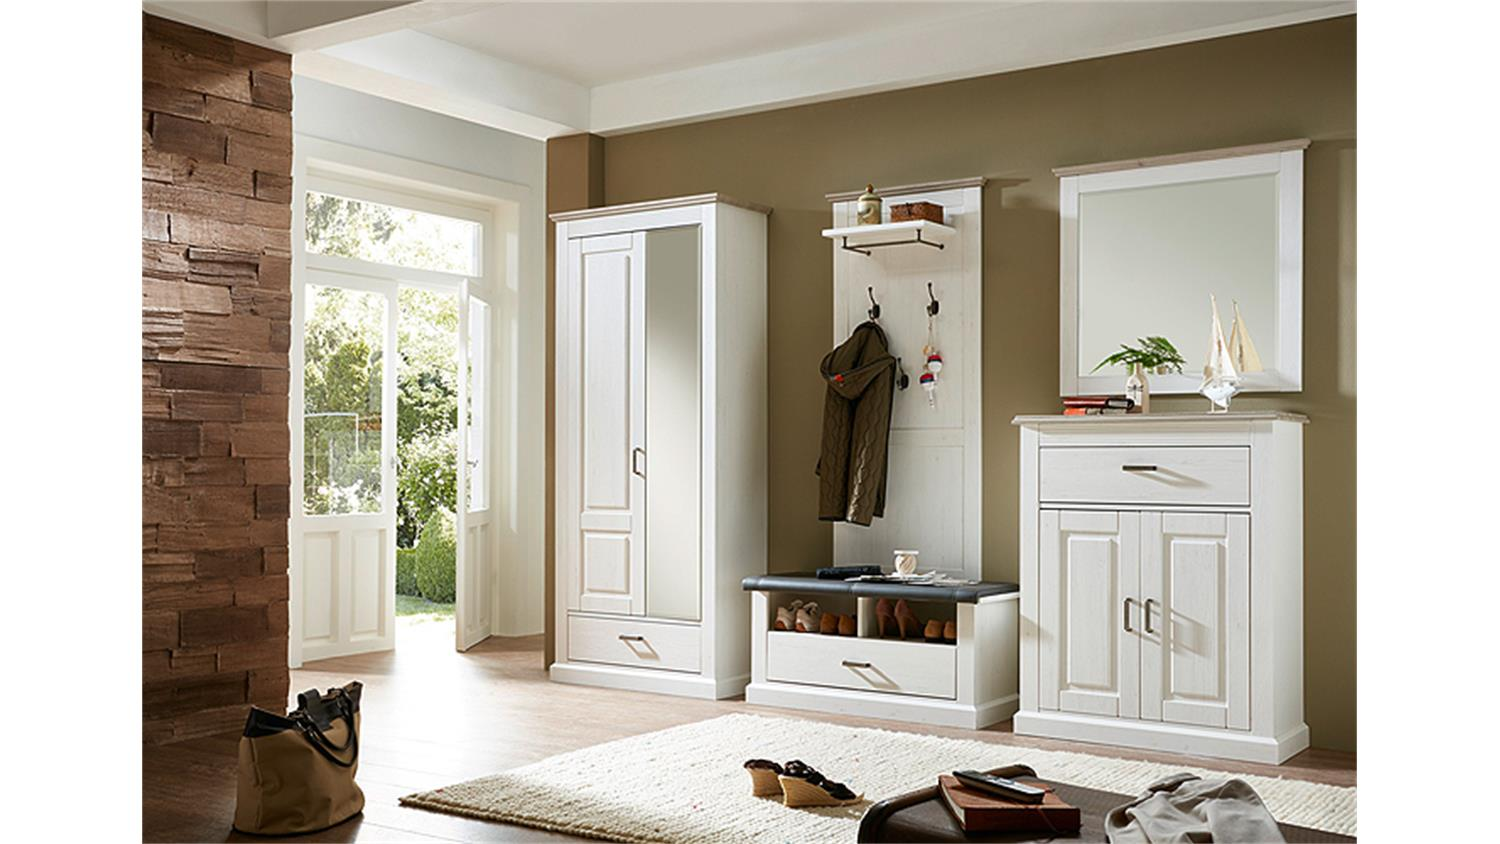 garderobenset 1 lima garderobe pinie hell und taupe. Black Bedroom Furniture Sets. Home Design Ideas